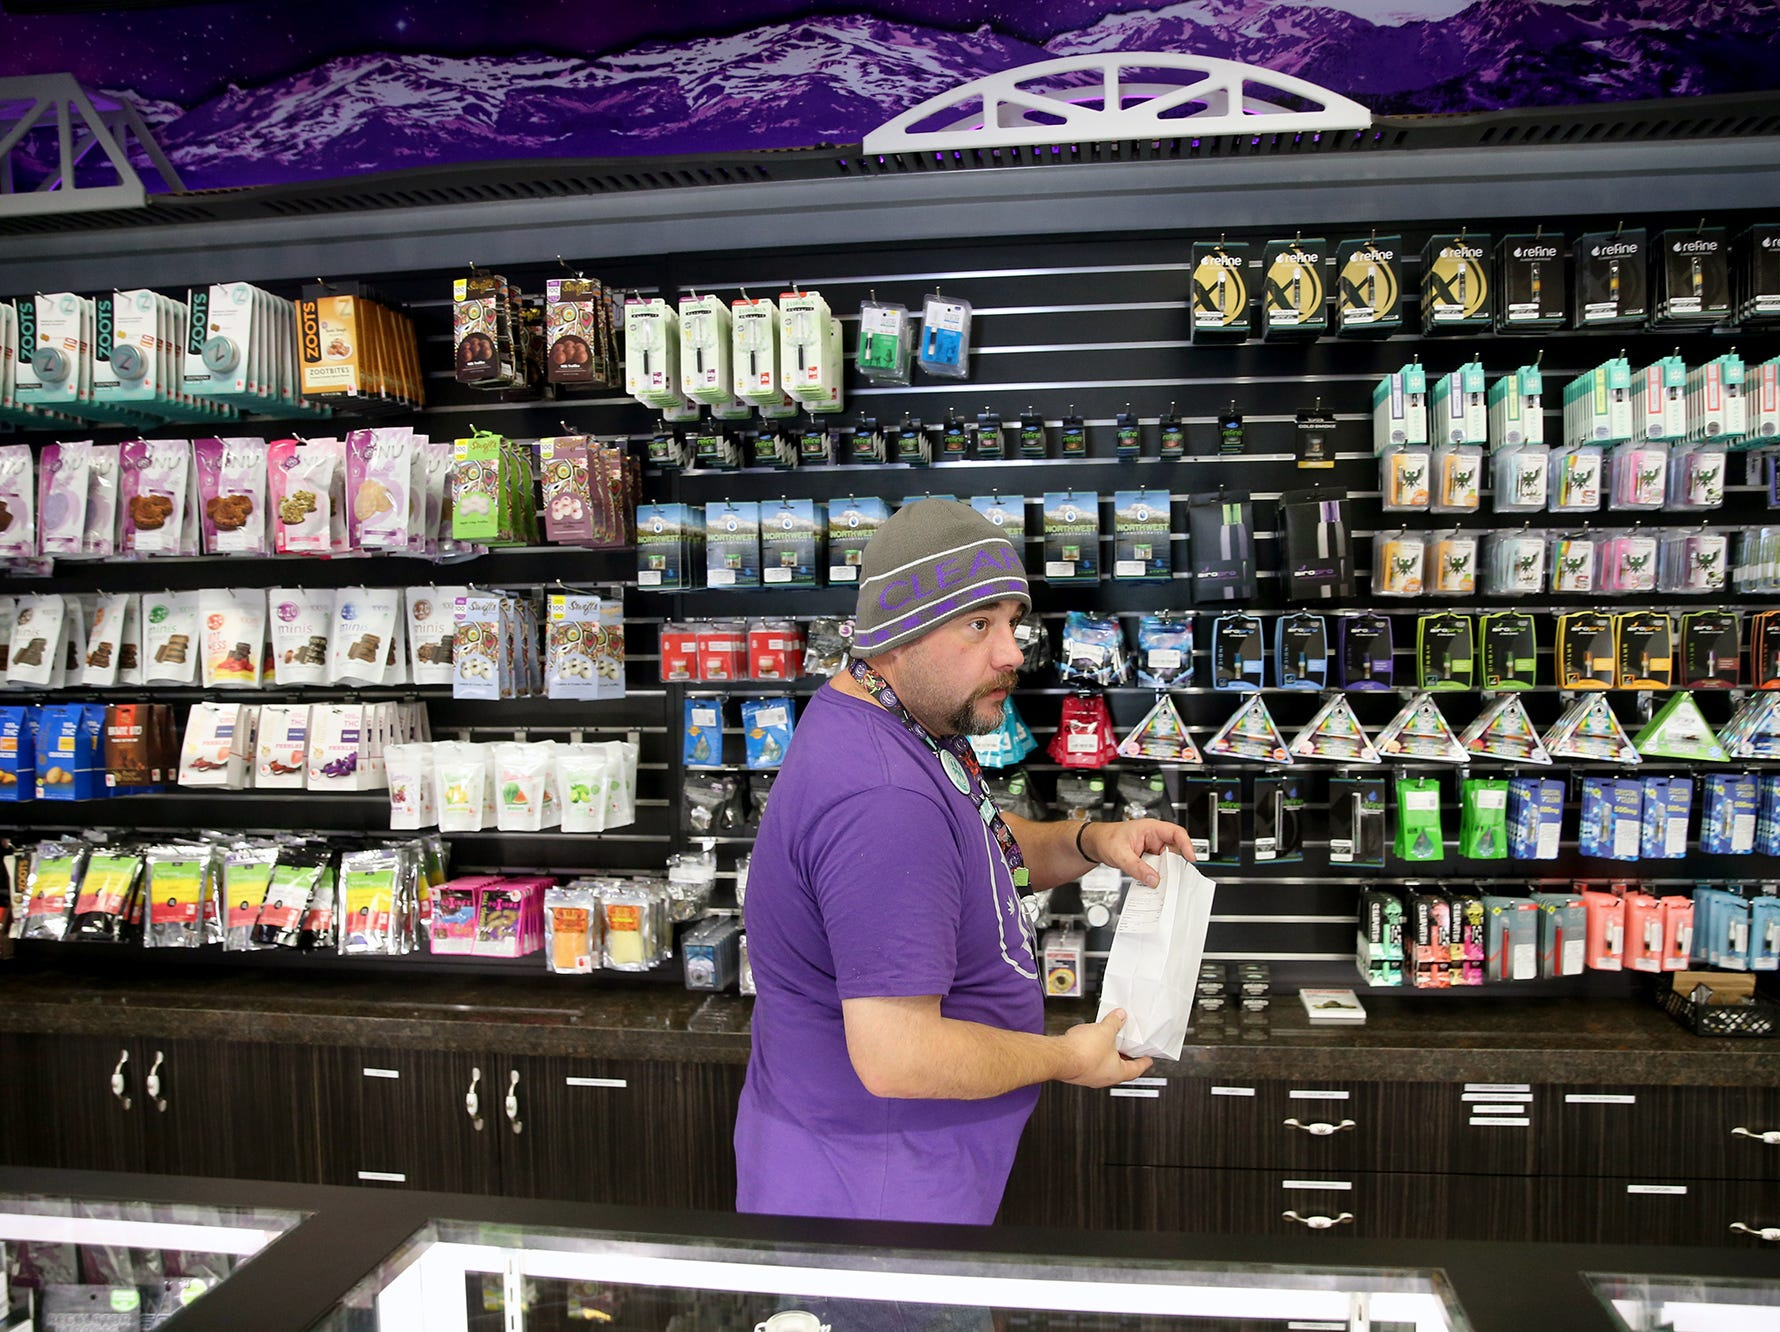 Luc Martin, a bud tender at Clear Choice Cannabis on Highway 303 in East Bremerton, fills a customer's order on Monday.